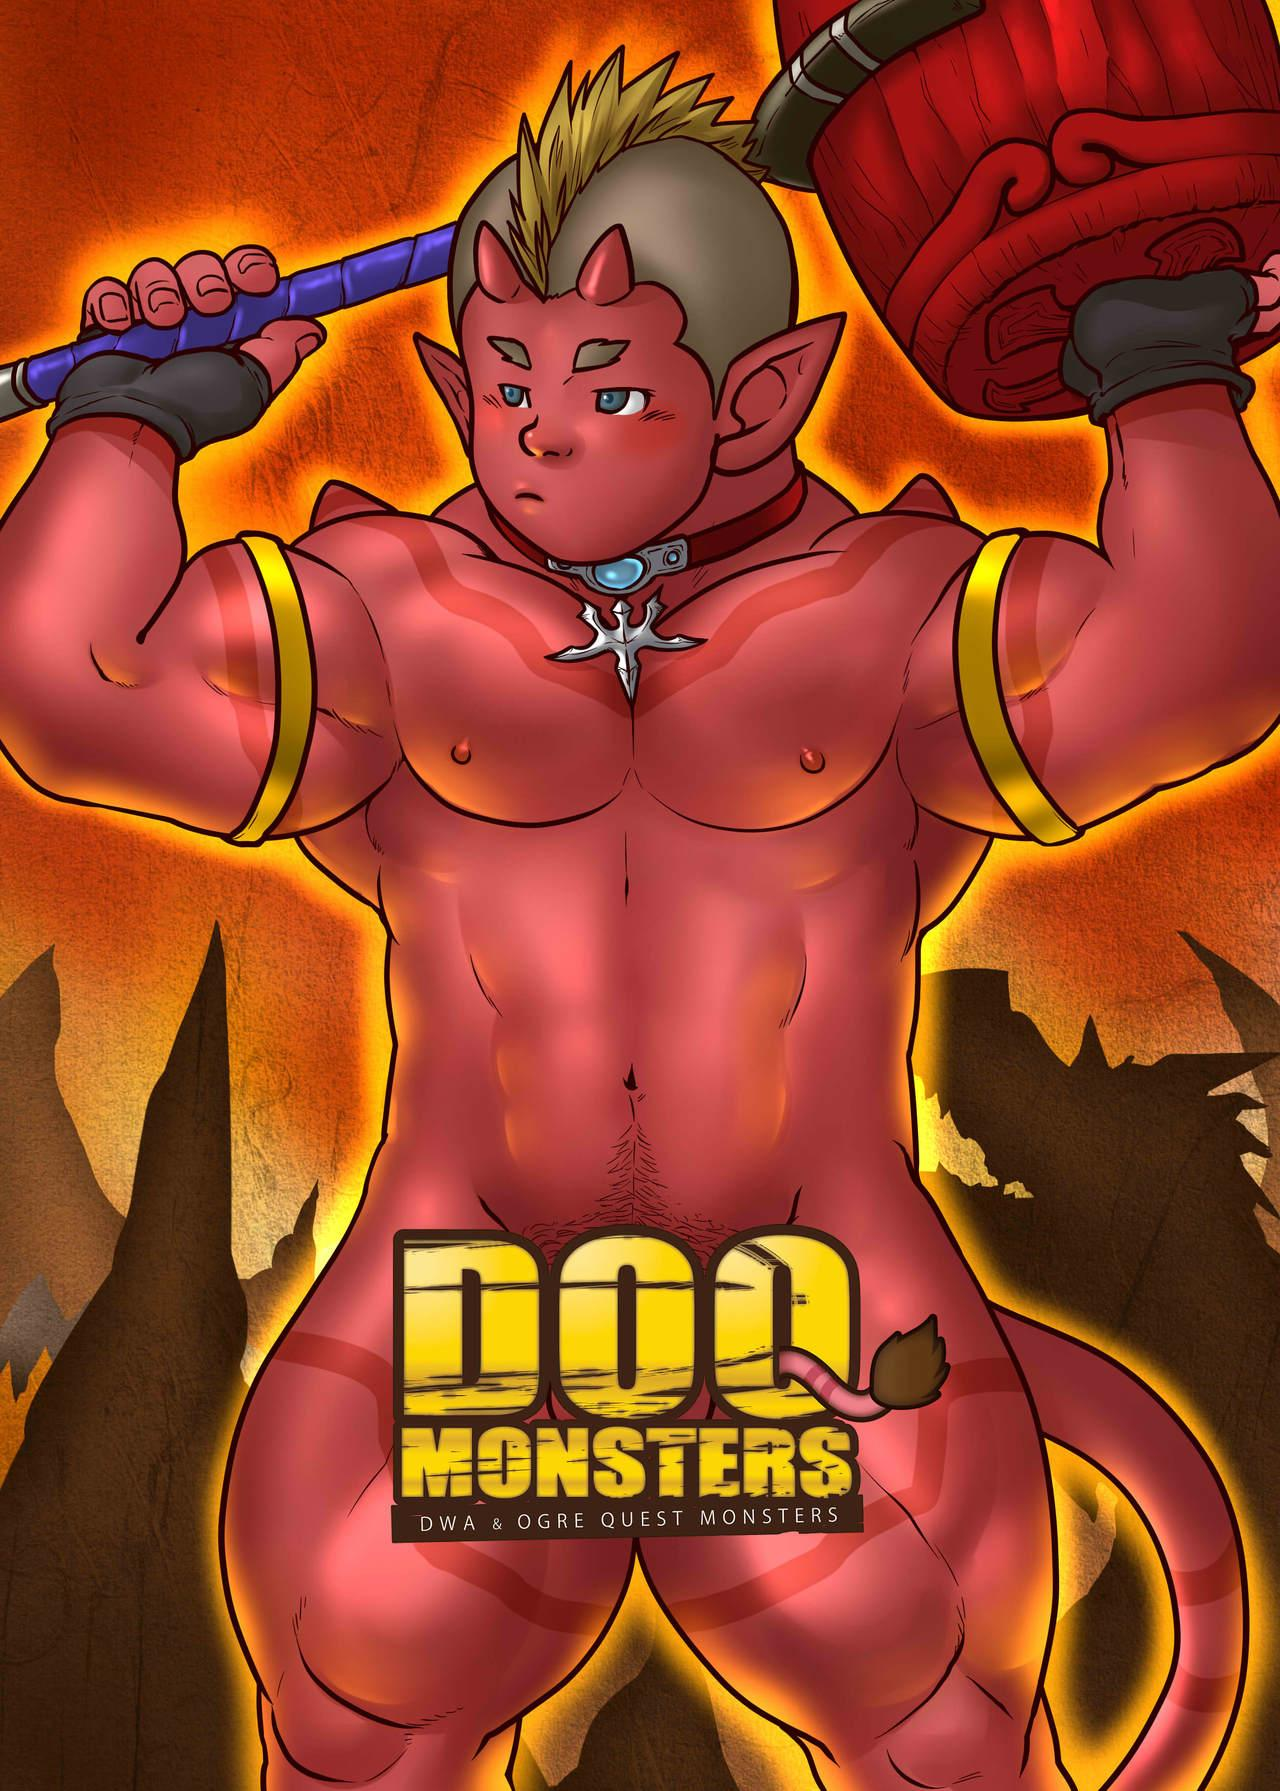 DOQ MONSTERS DWA & OGRE QUEST MONSTERS 15